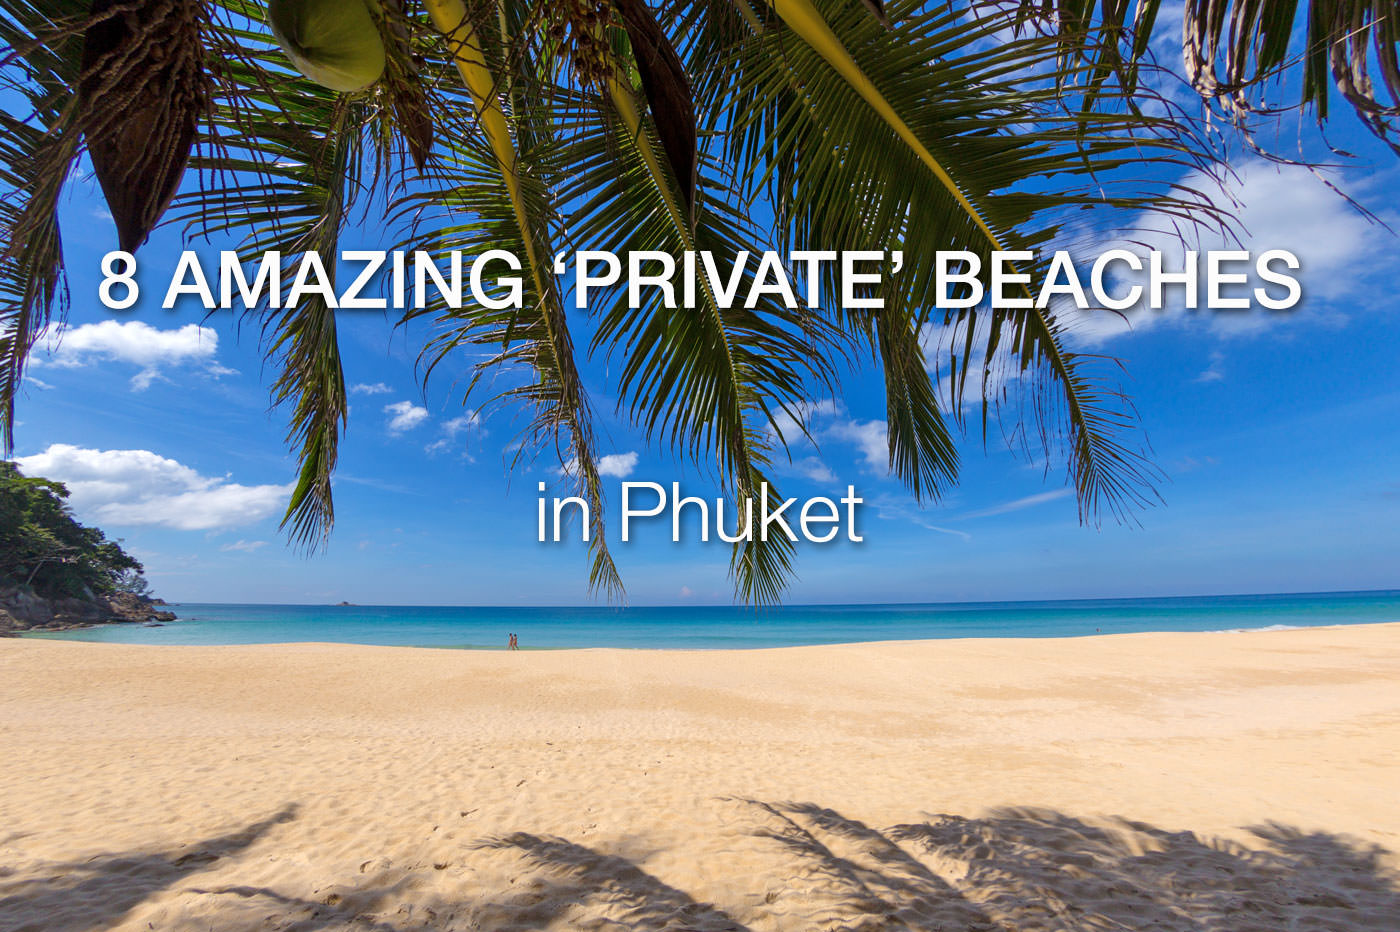 8 Amazing Private Beaches of Phuket